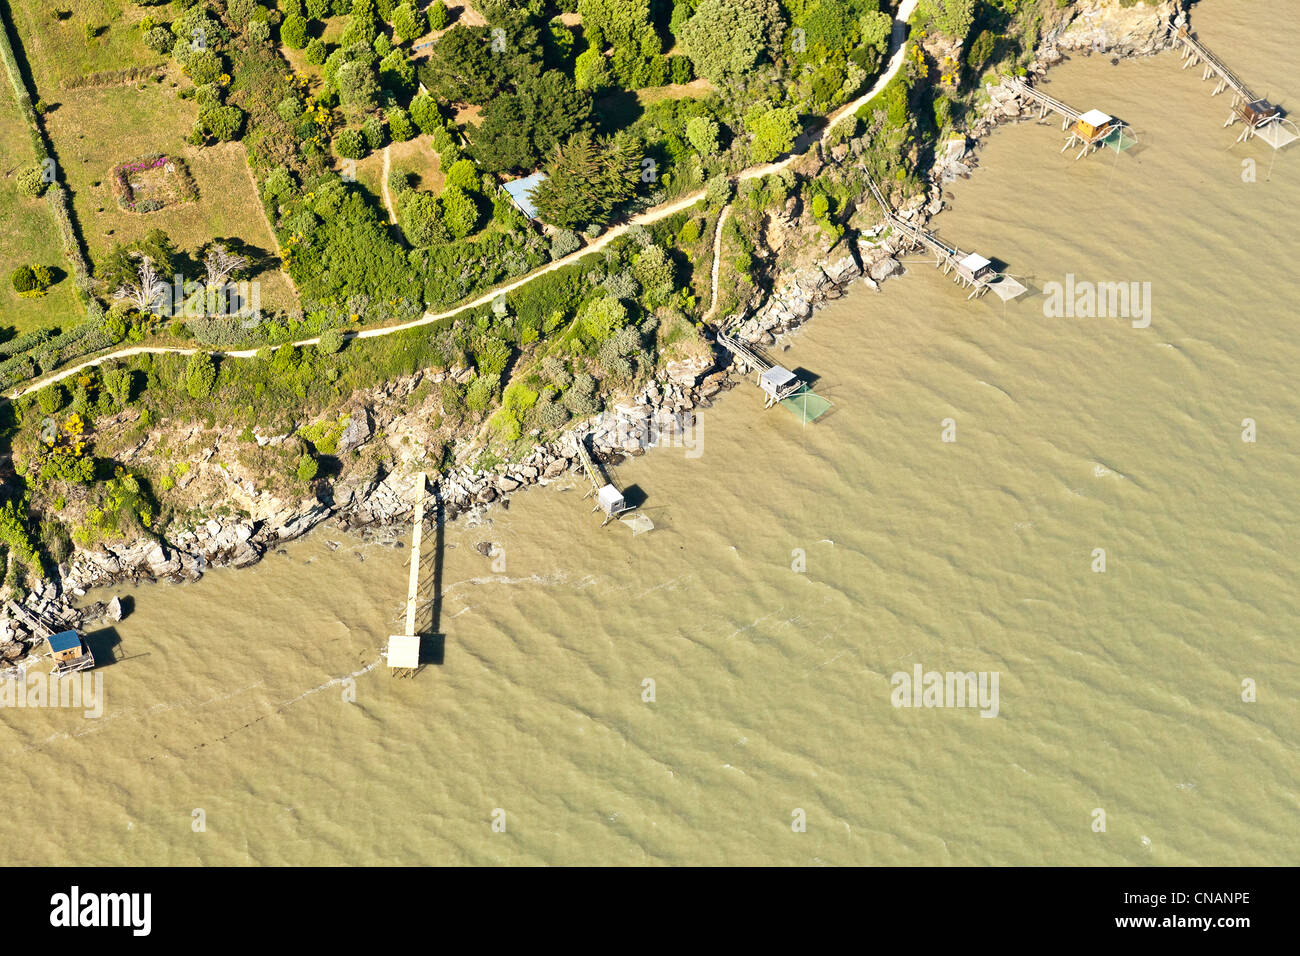 France, Loire-Atlantique, Pornic, fisheries (aerial photography) - Stock Image